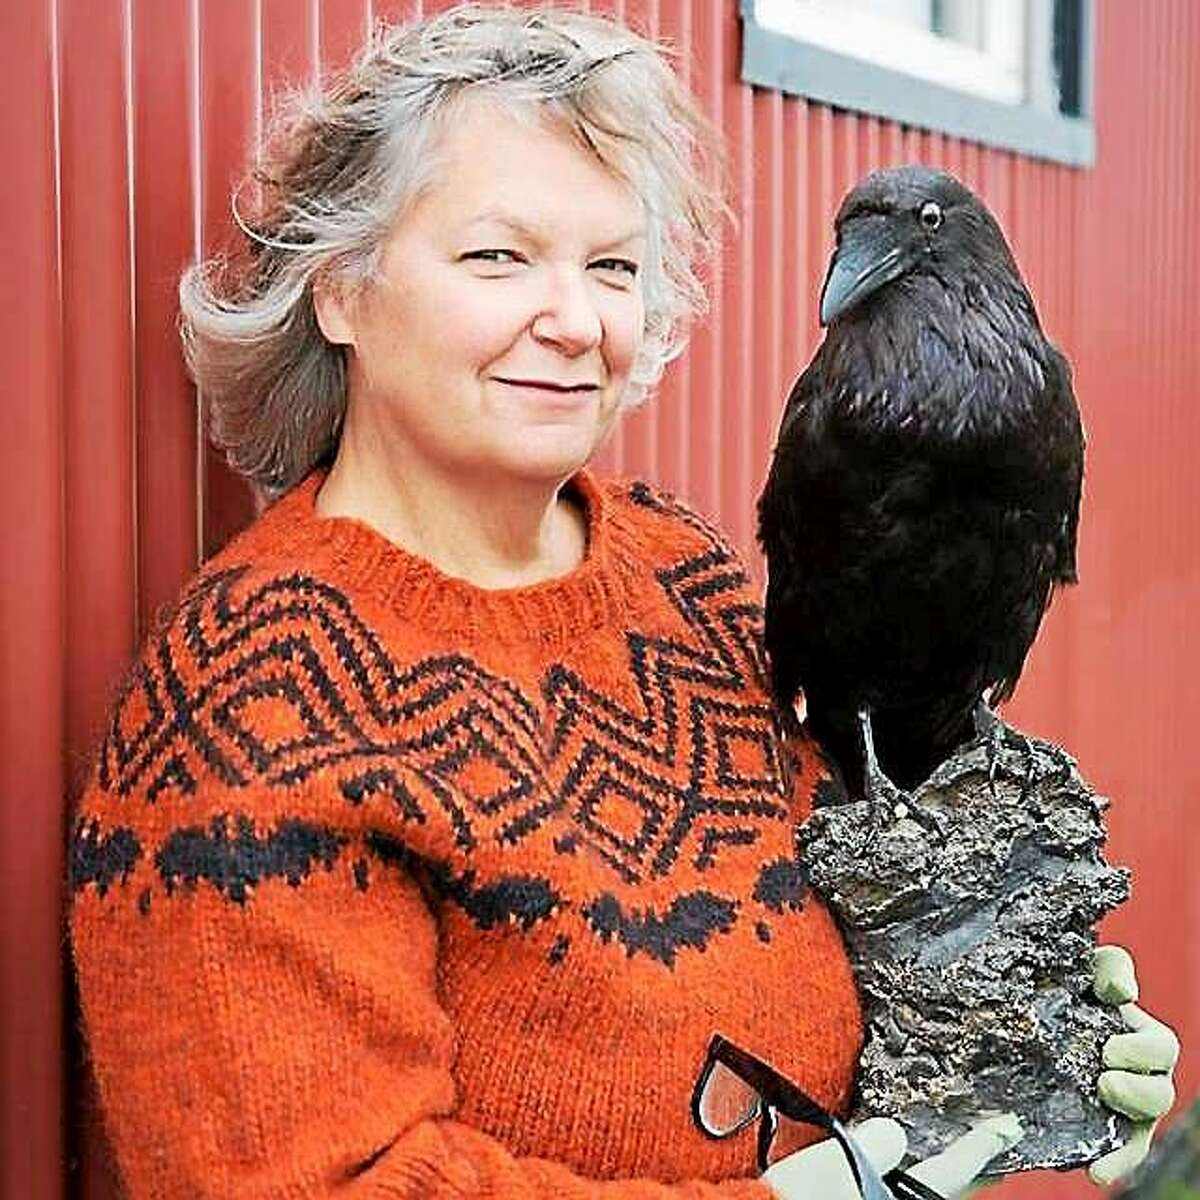 Gerri Griswold brings her Iceland Affair to the area on Oct. 17.